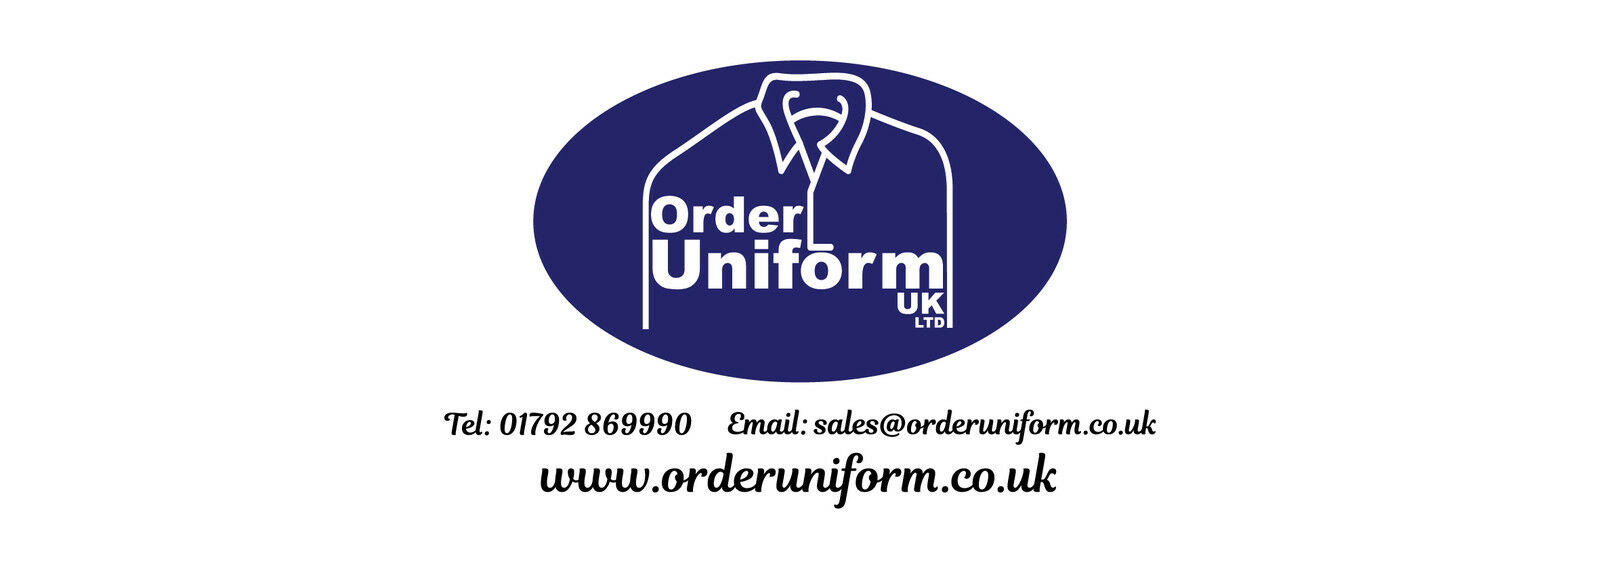 Order Uniform UK Ltd